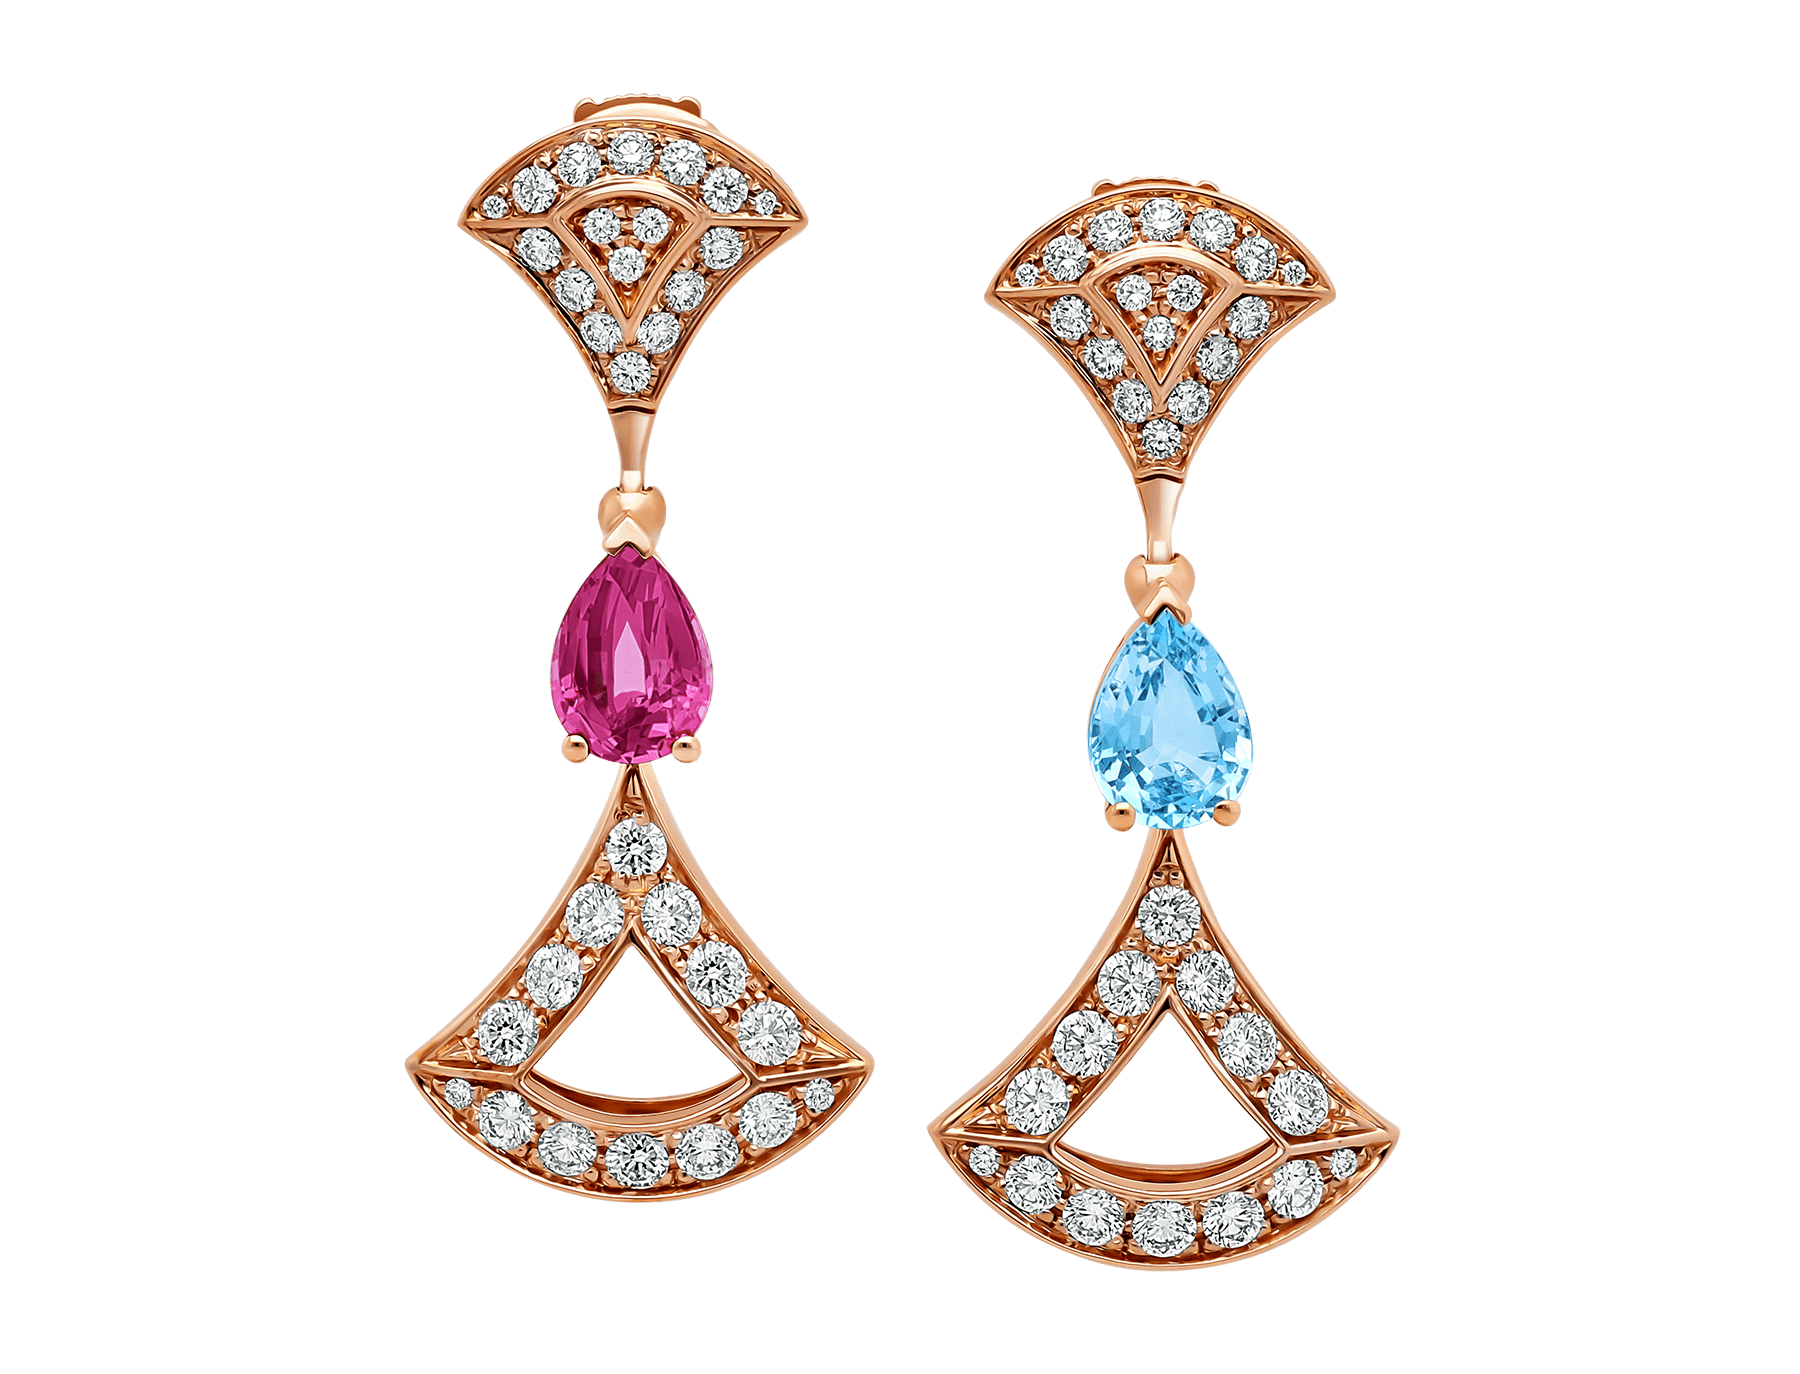 Boucles d'oreilles DIVAS' DREAM en or rose 18 K serties de pierres de couleur et pavé diamants 355620 image 1